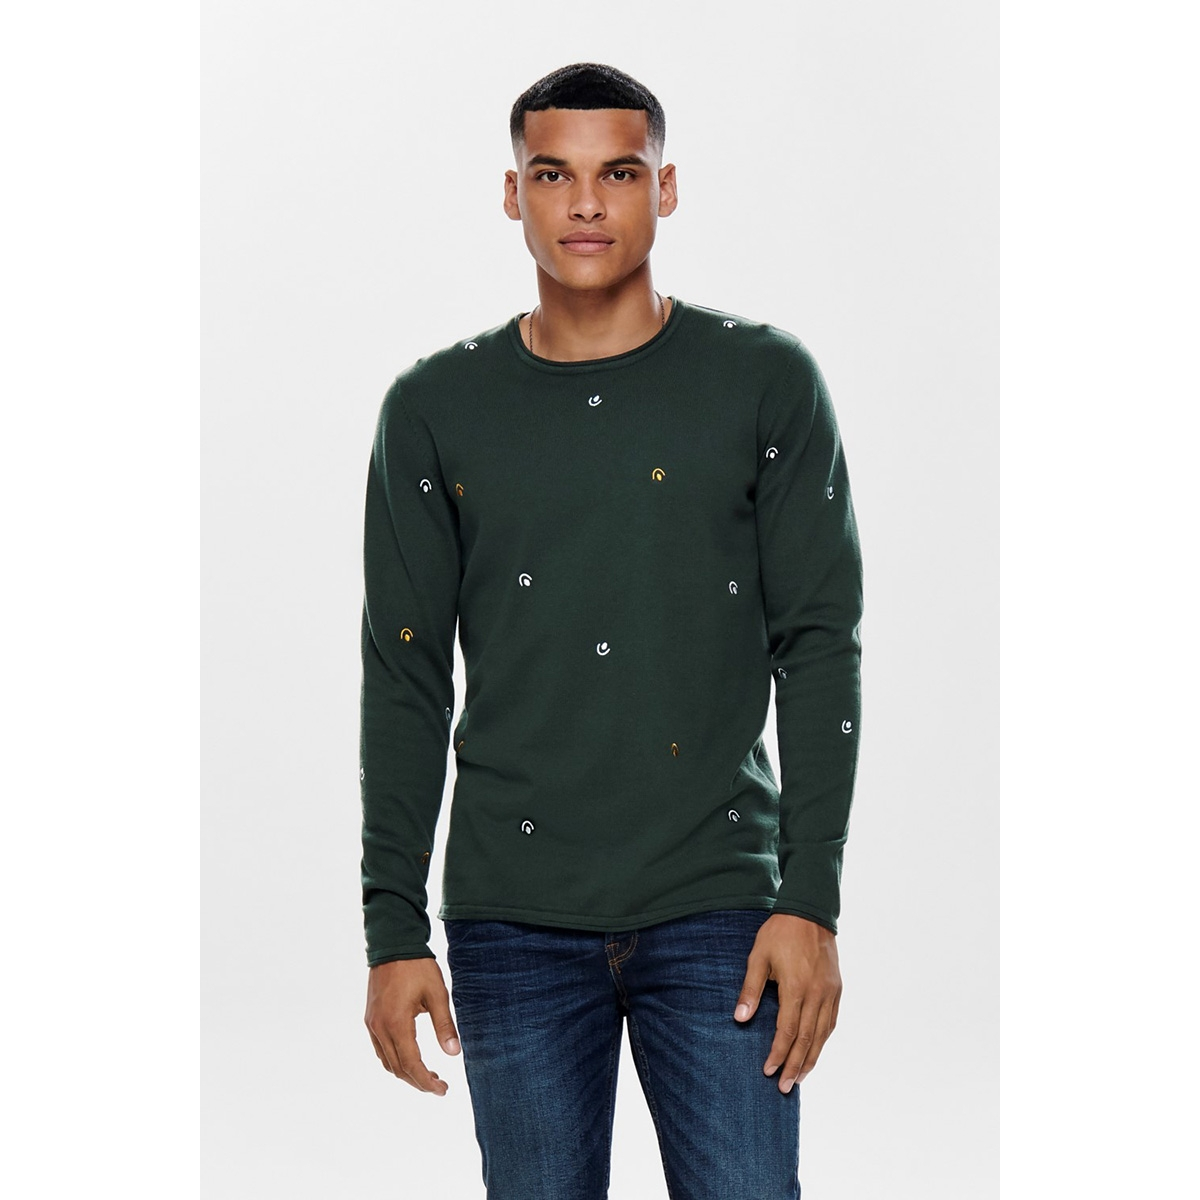 onsgarson 12 ao embroidery knit 22012590 only & sons trui darkest spruce